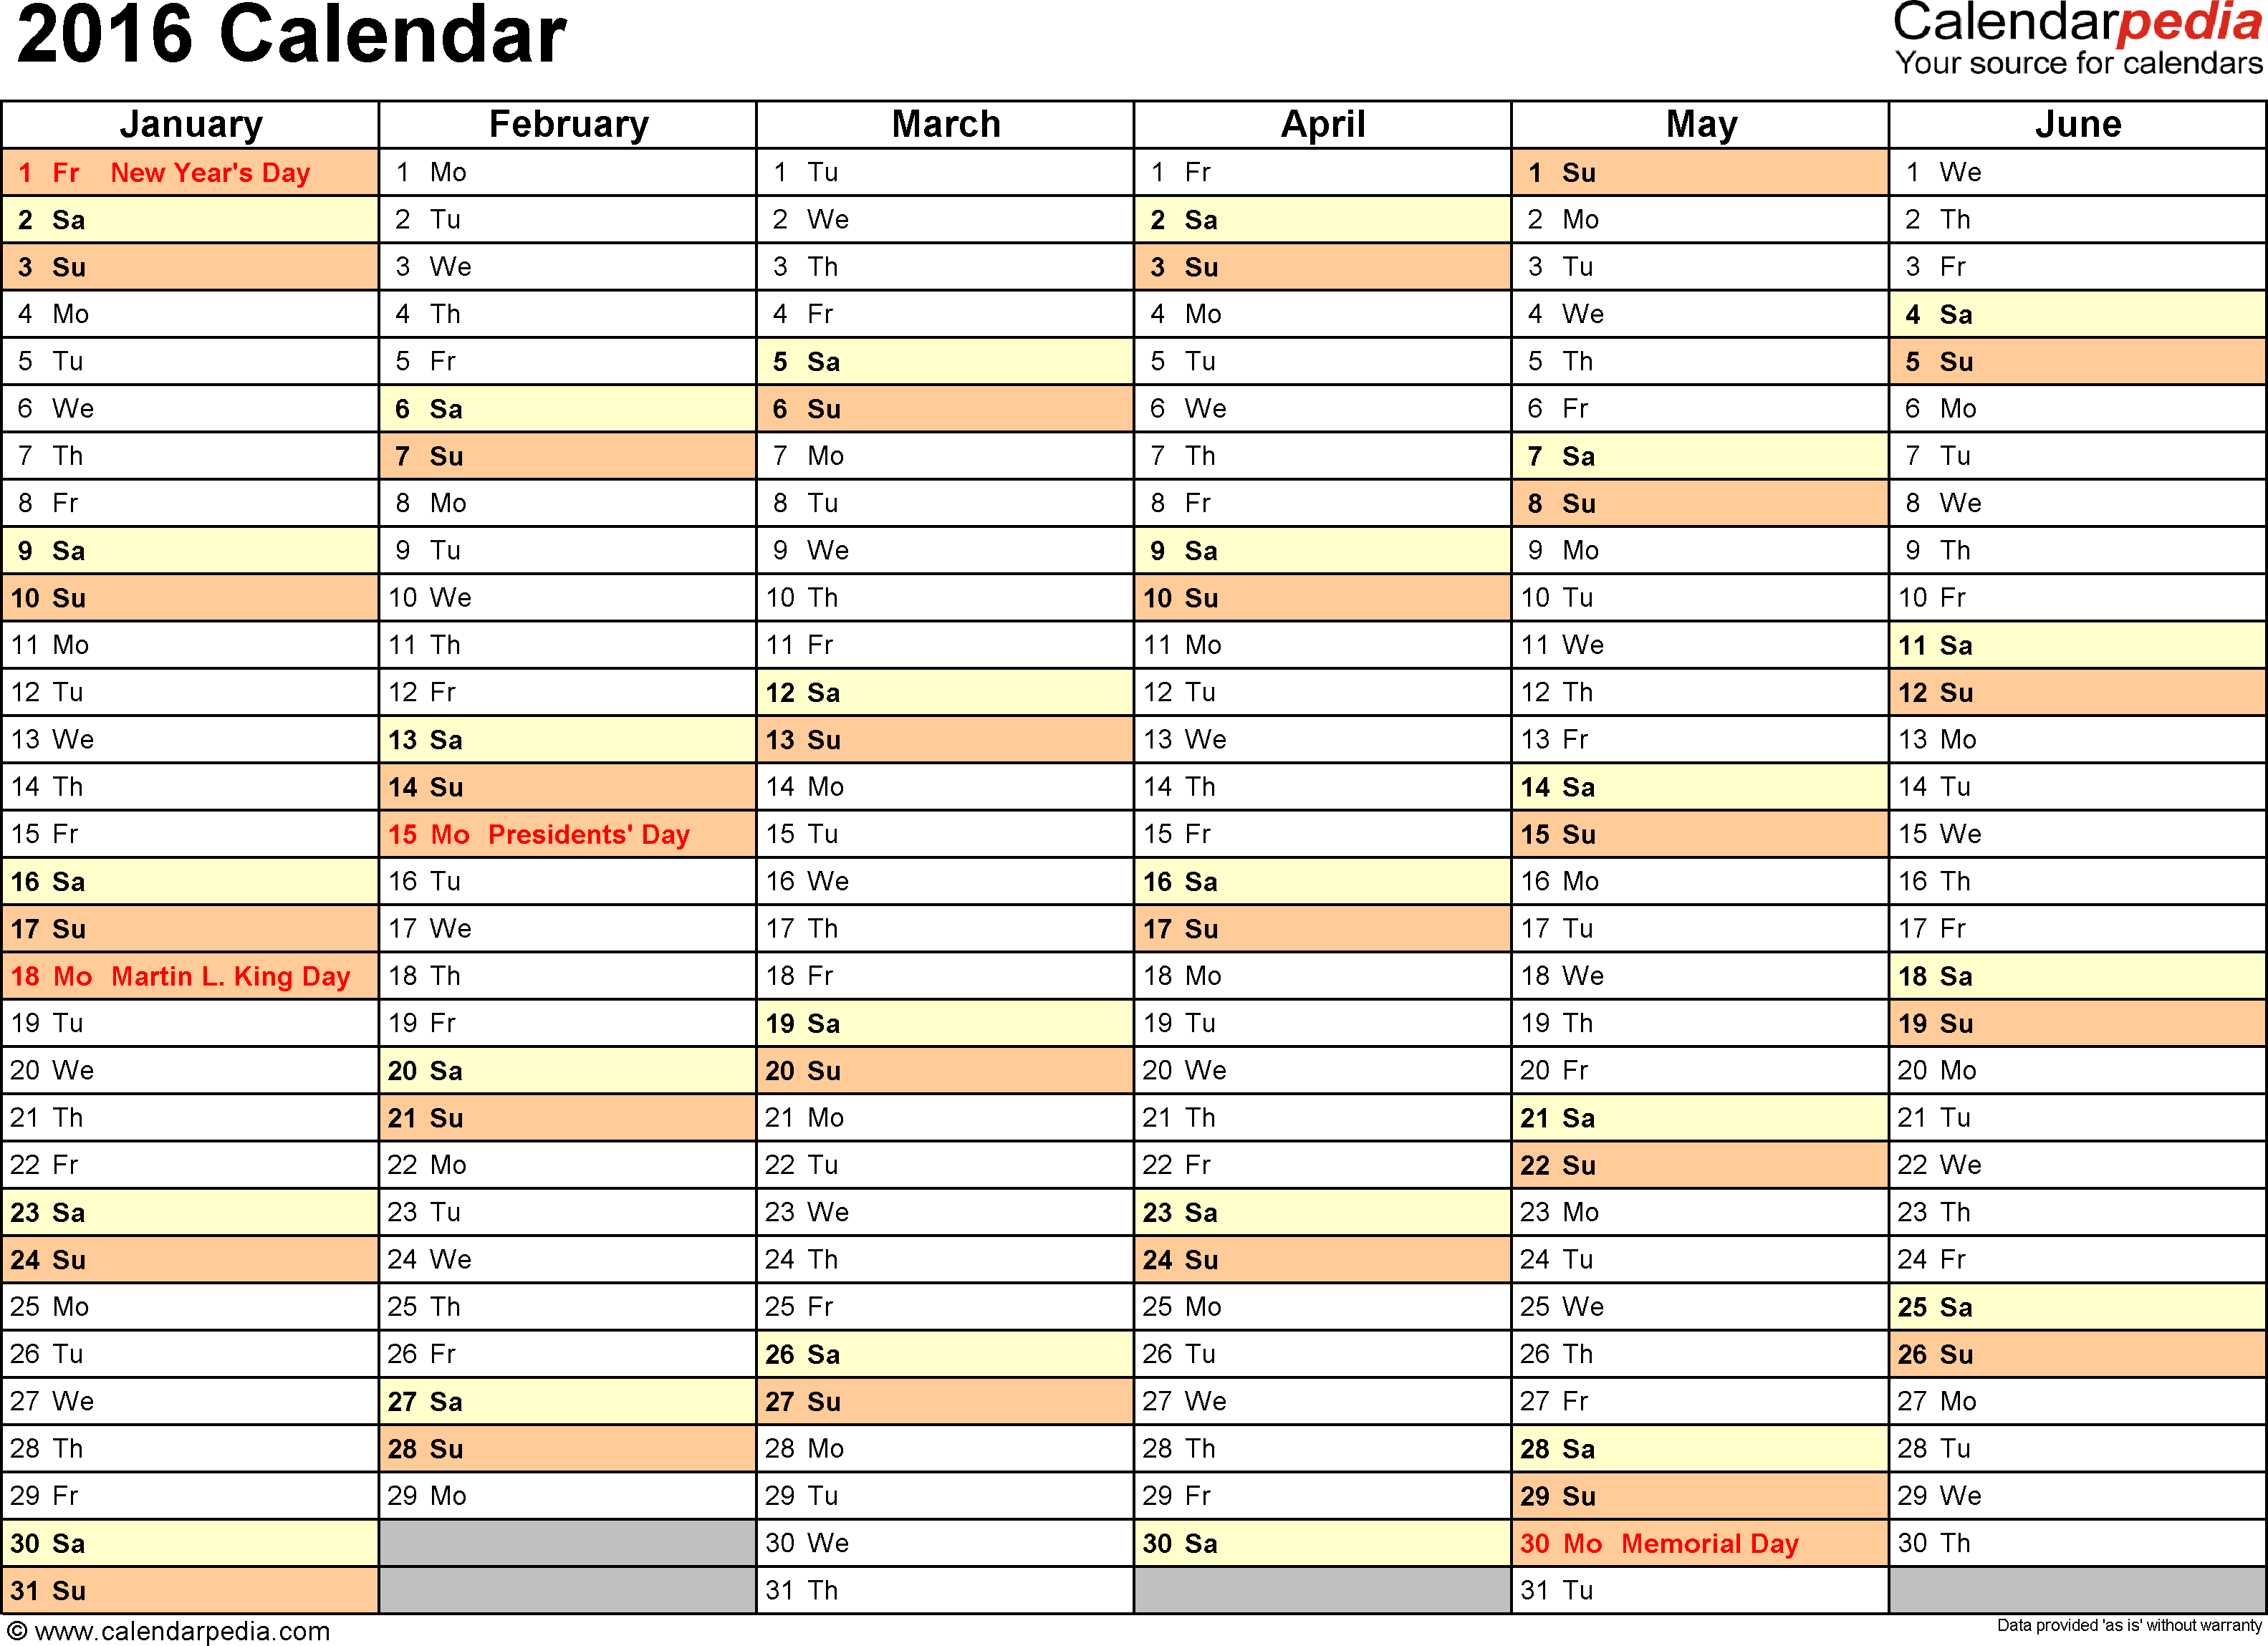 Template 4: 2016 Calendar for Excel, months horizontally, 2 pages, landscape orientation